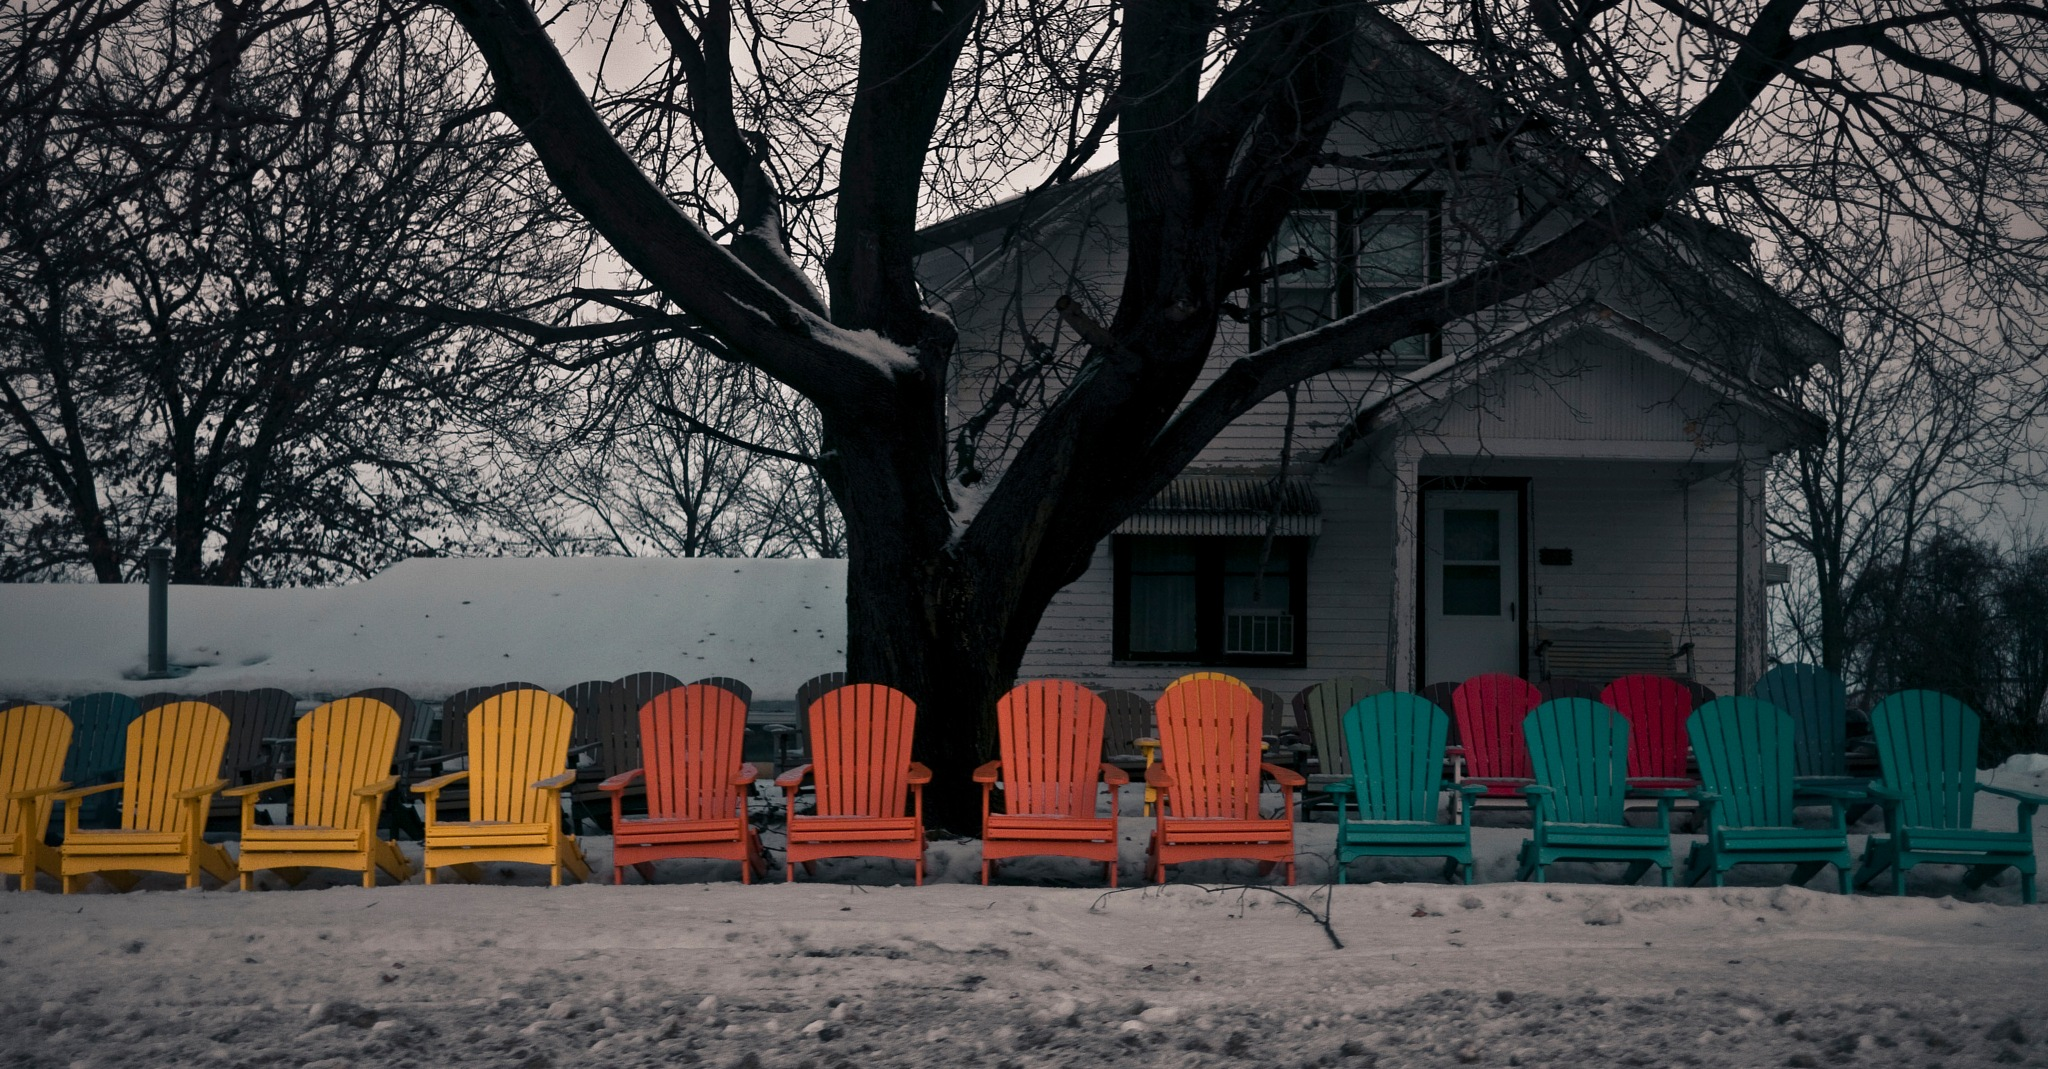 Colored Lawn Chairs - Harmony MN by Robert Henry